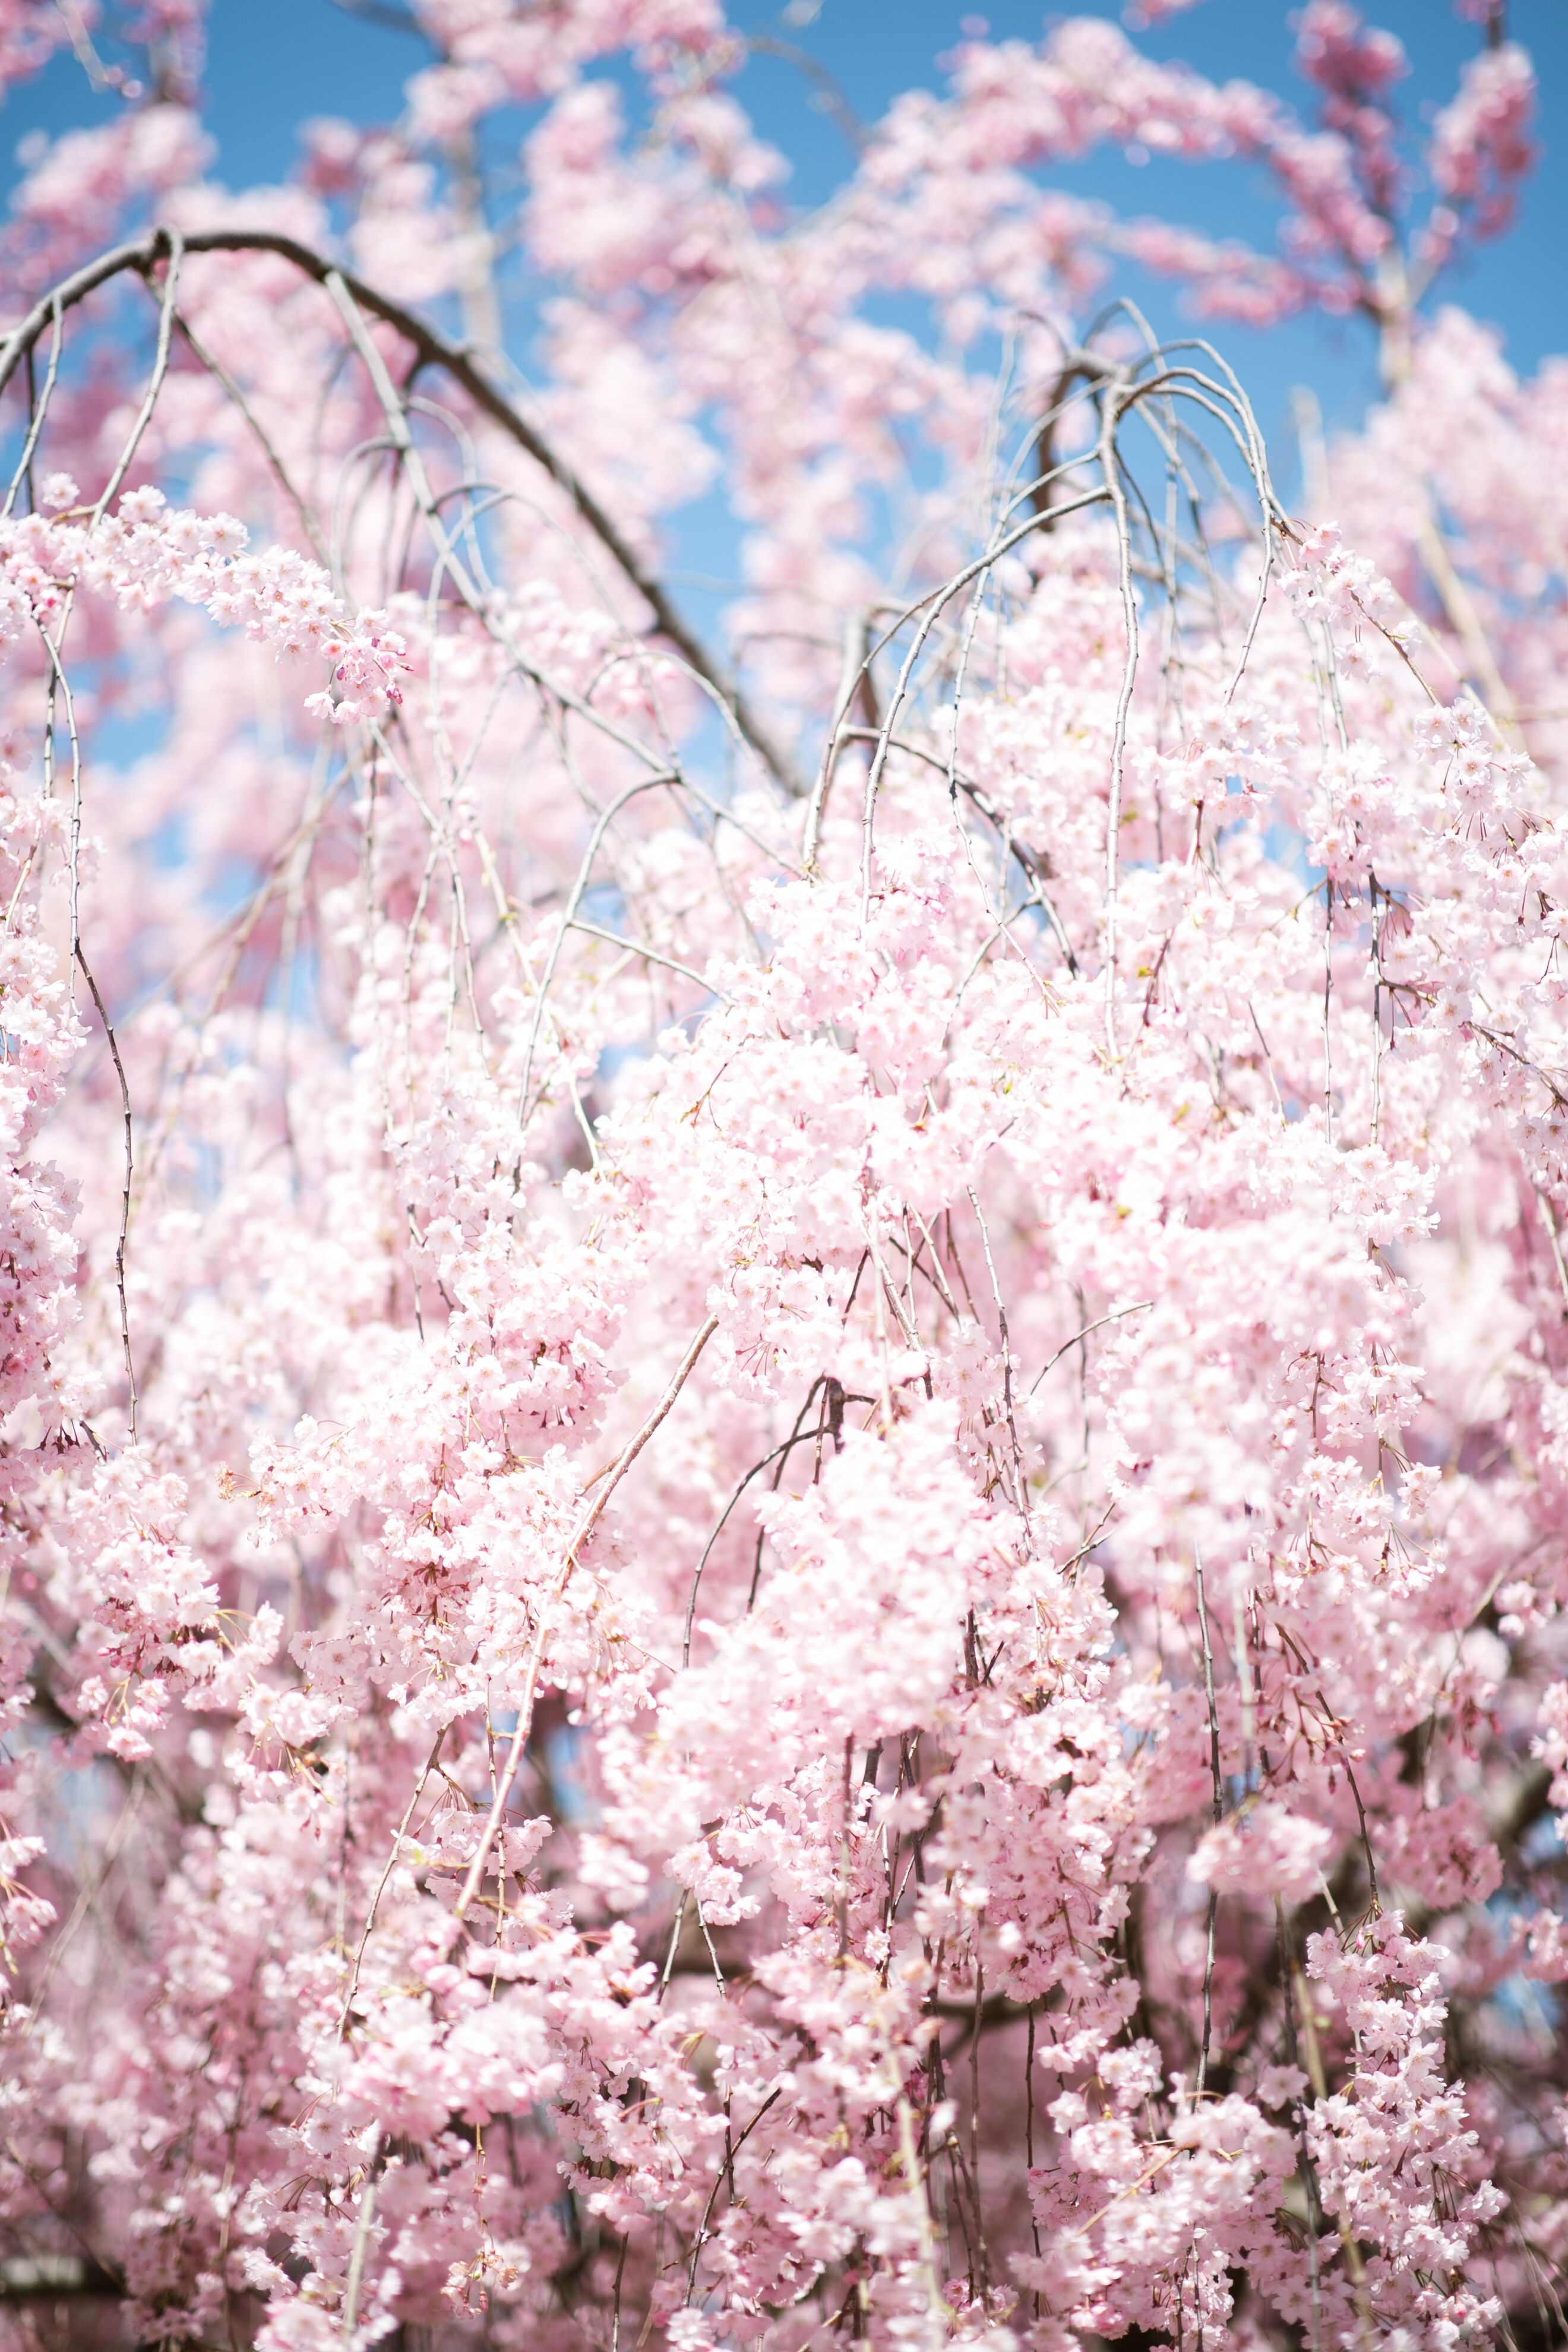 Cherry Blossoms Phone Wallpaper Images Phone Wallpaper Backgrounds Phone Wallpapers